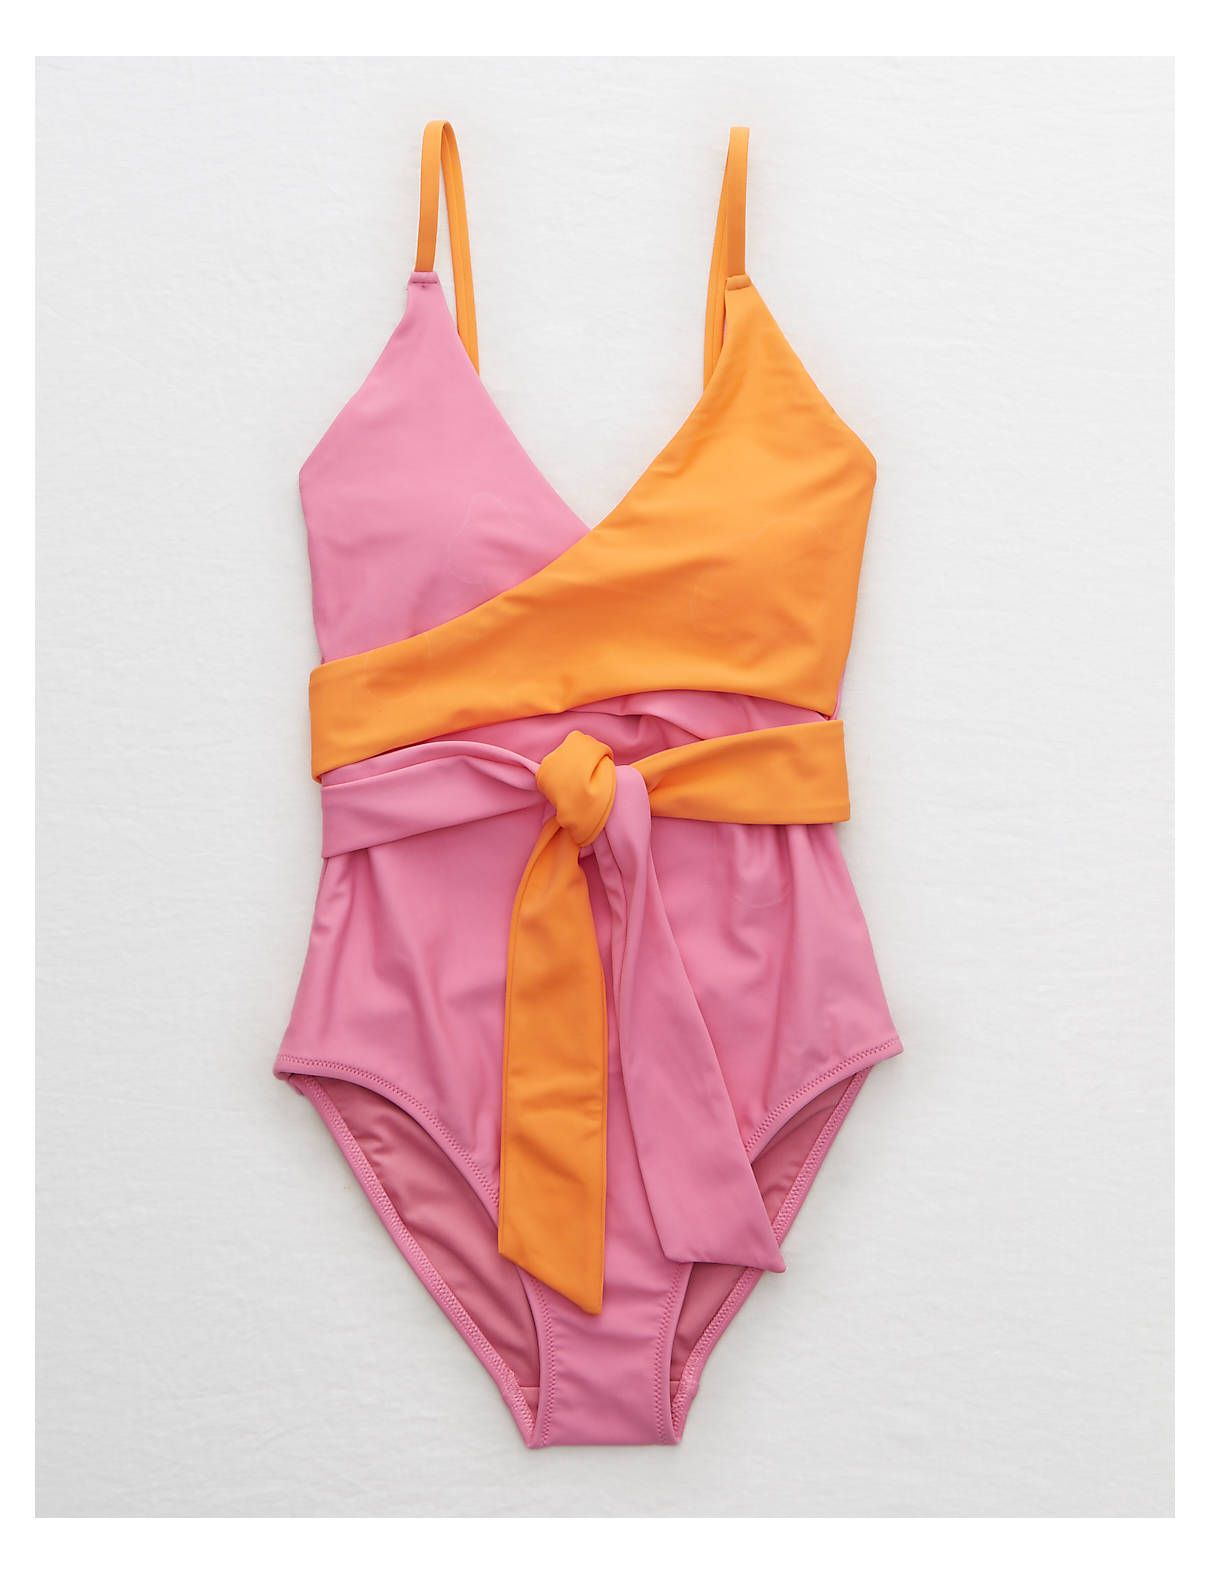 65e048ee64d18 Aerie Color Block One Piece Swimsuit, Pink | Aerie for American Eagle